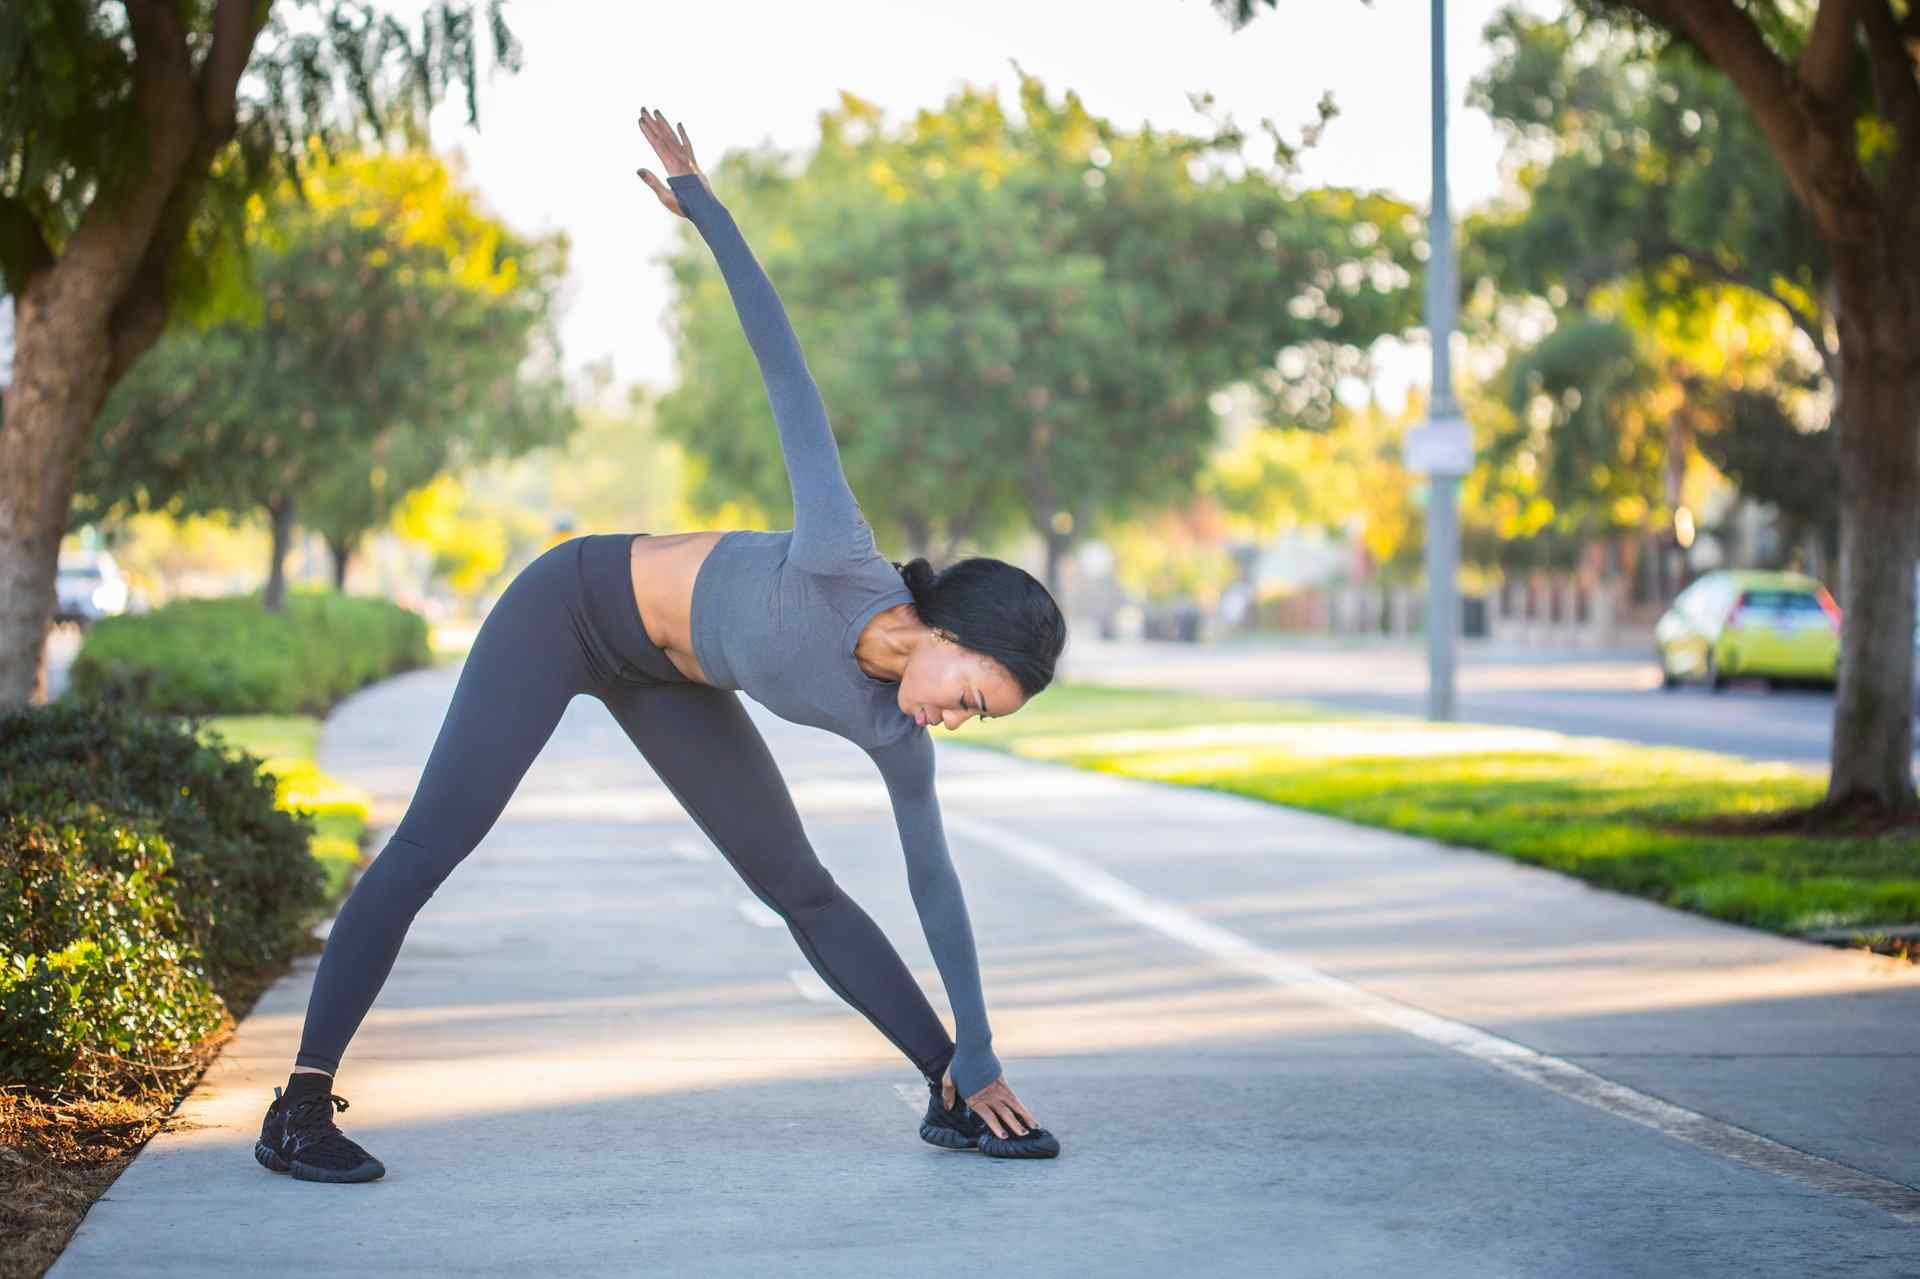 Warm Up Stretches. The Science Behind Warming Up and Cooling Down When Exercising.